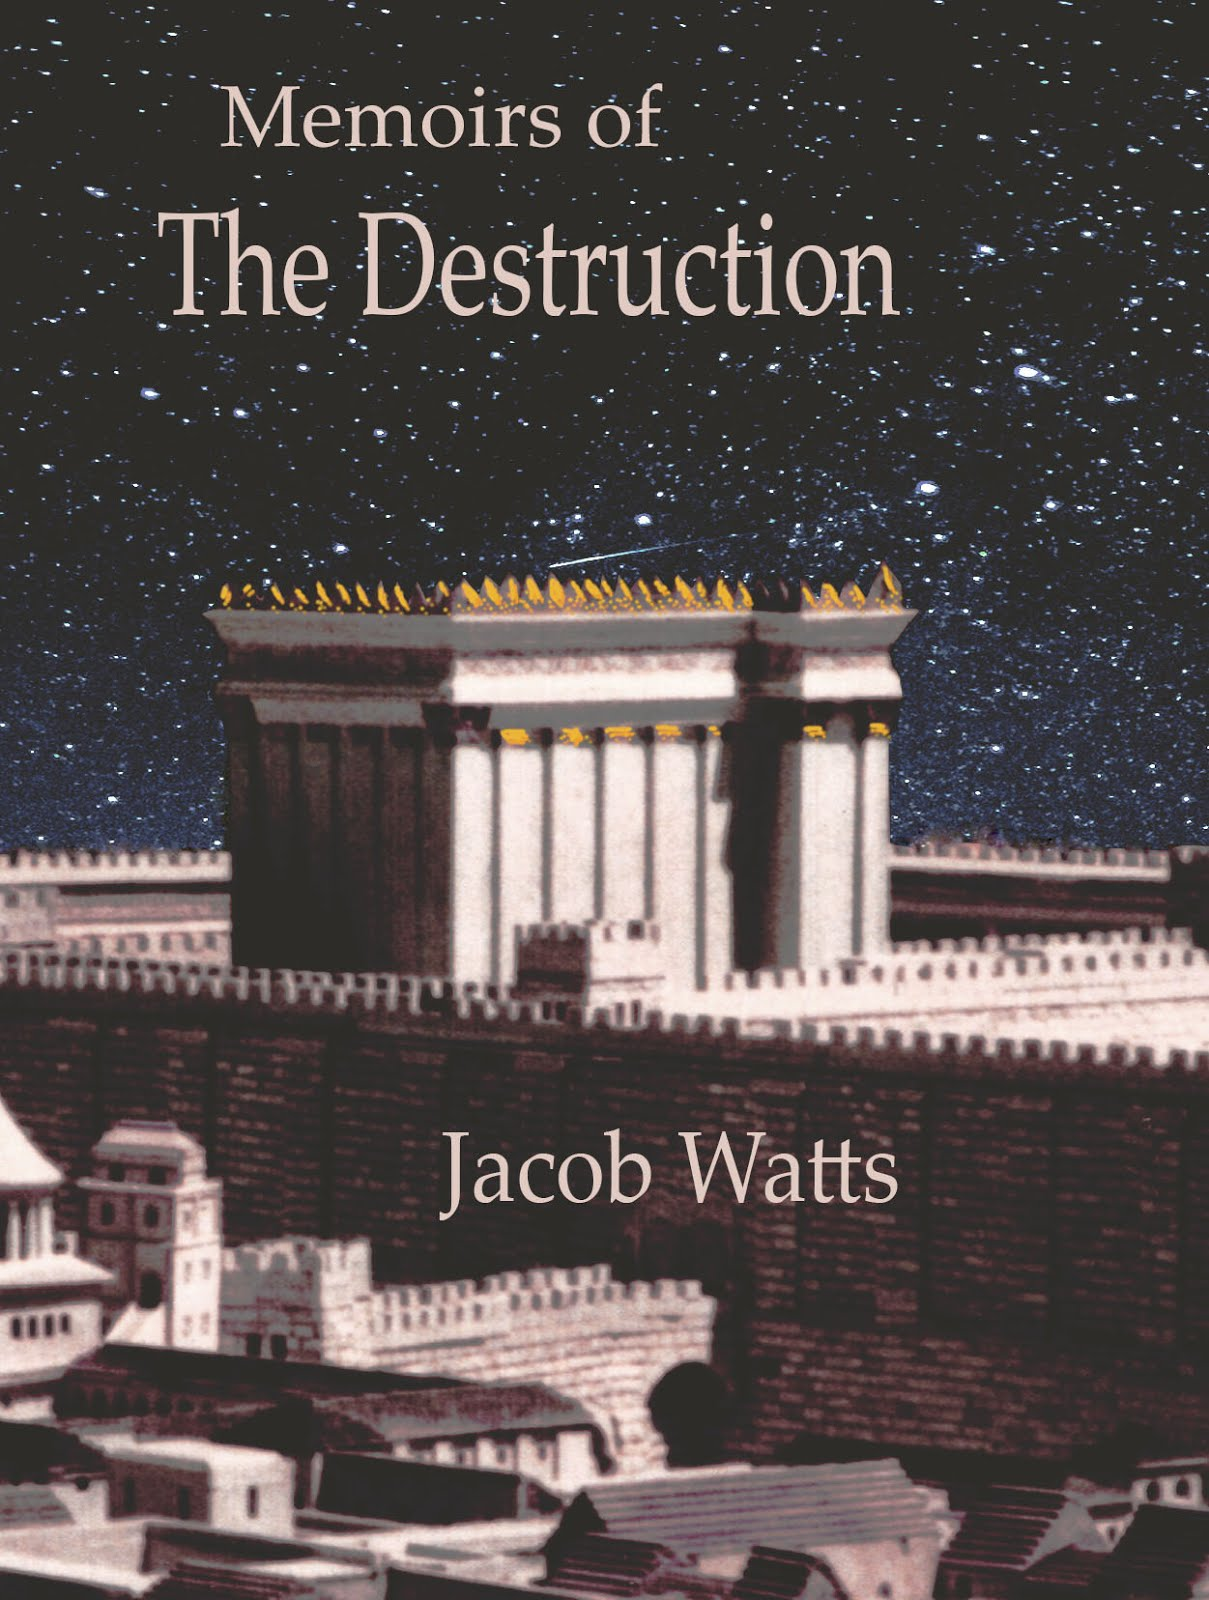 Novel About the First-Century Jewish Revolt Against Rome, edited by John Ensminger